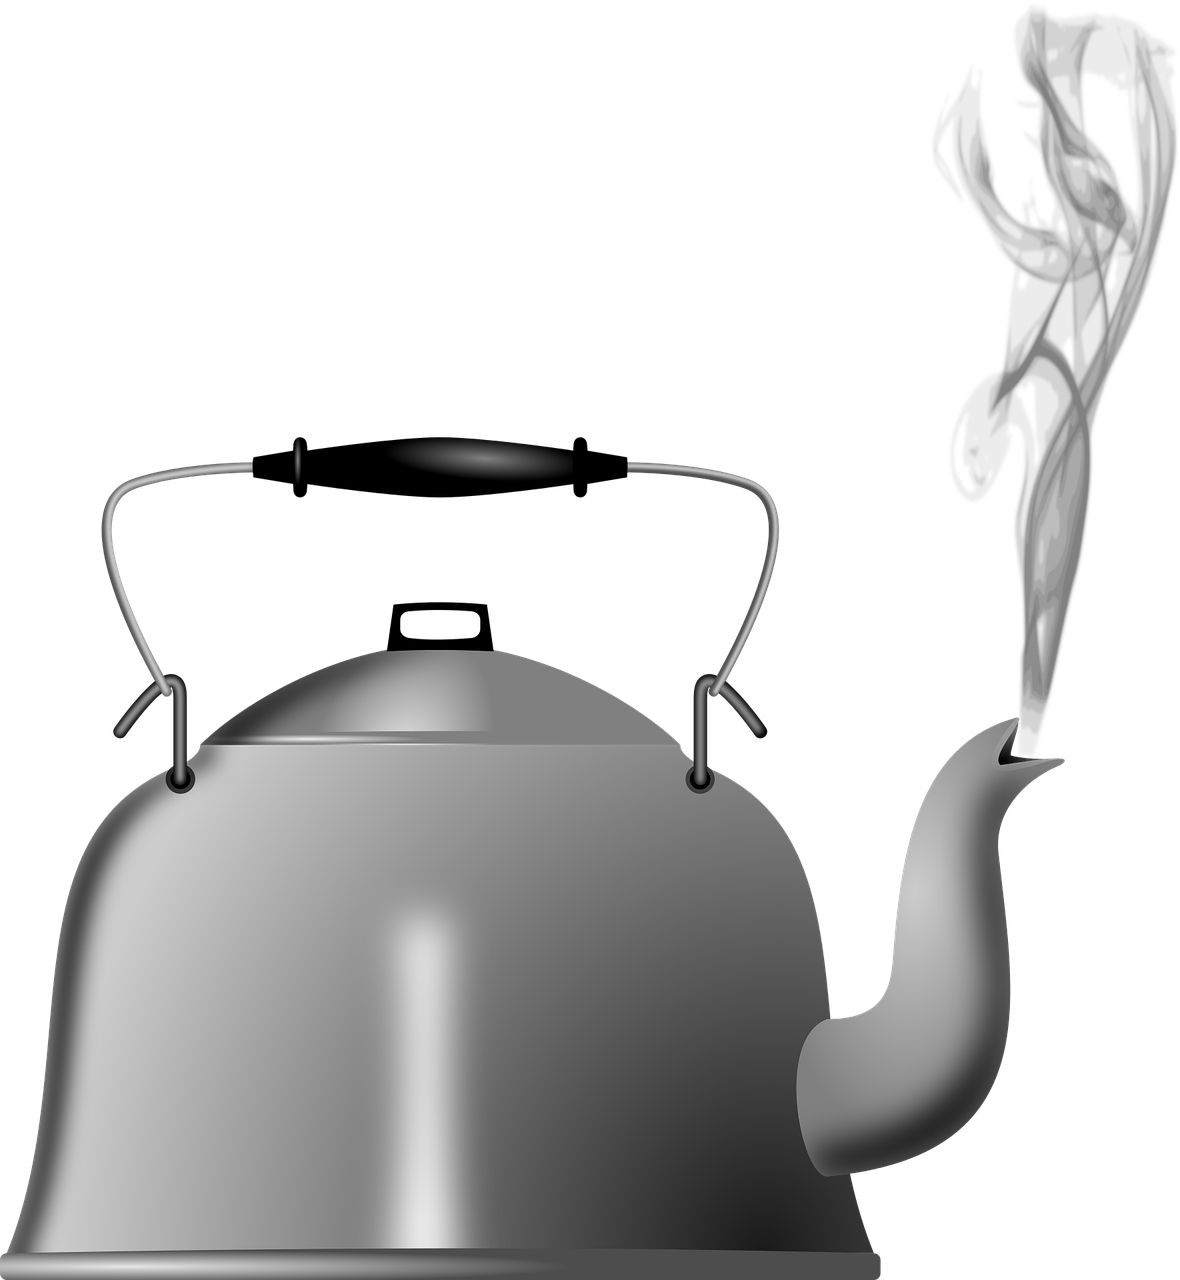 Kettle steam kitchen boiling. Toaster clipart small appliance